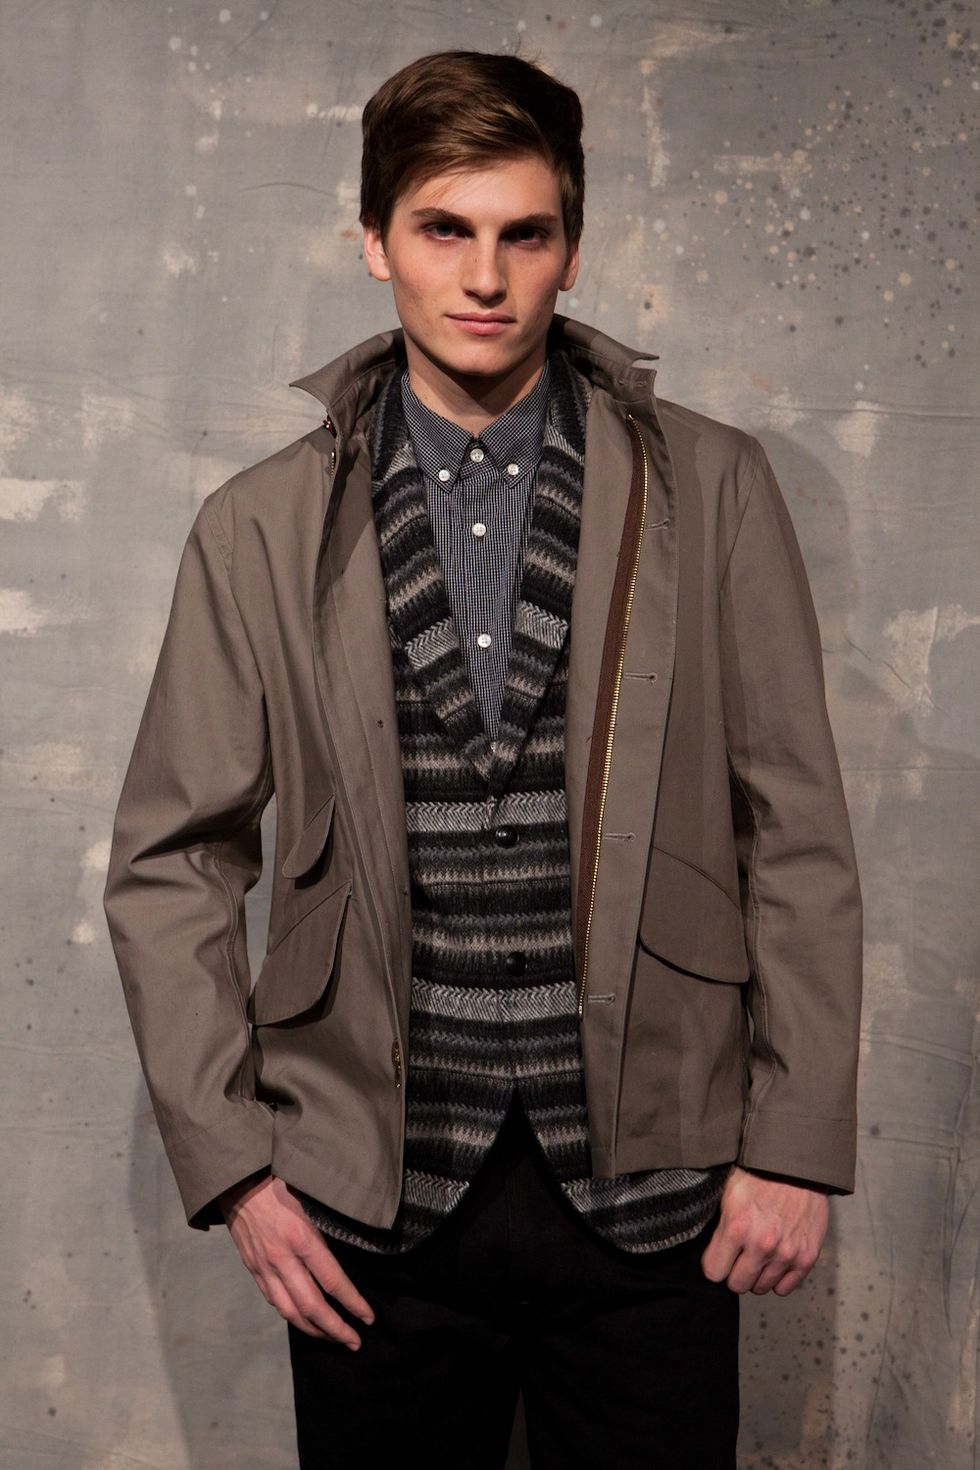 Steven Alan's Rich, Textured F/W '12 Collection